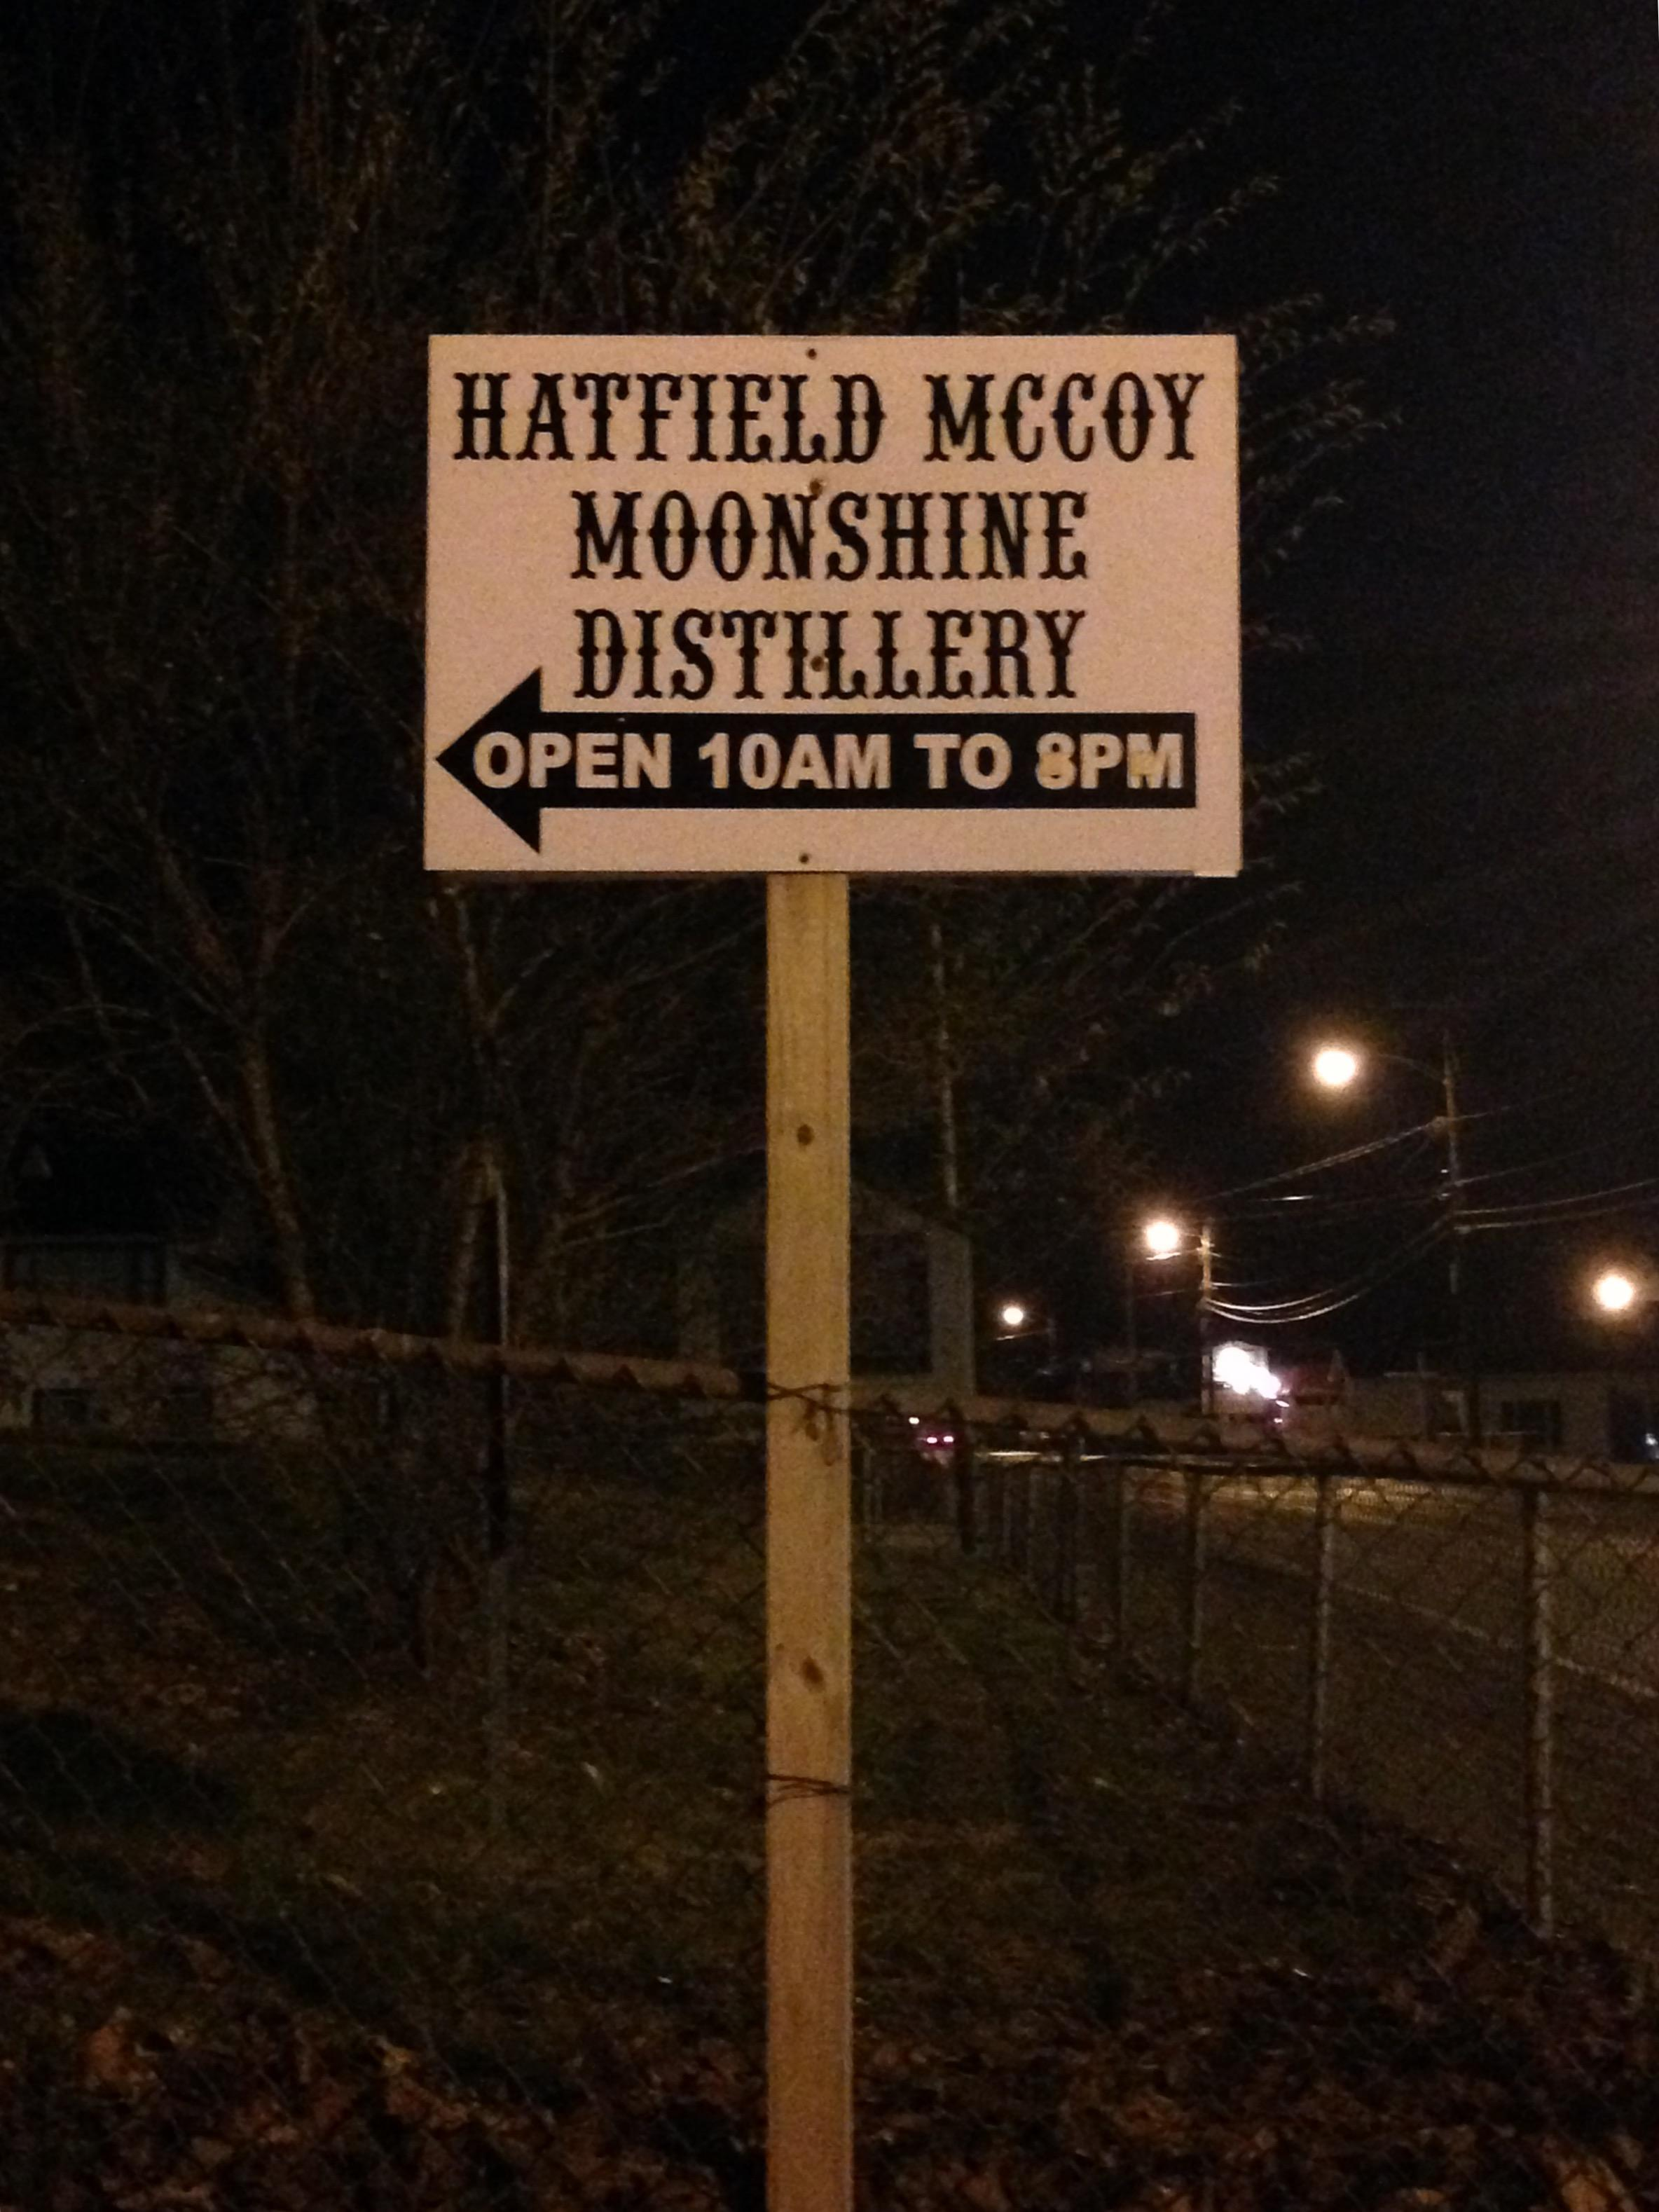 Hatfields, McCoys make moonshine legally in southern W.Va.